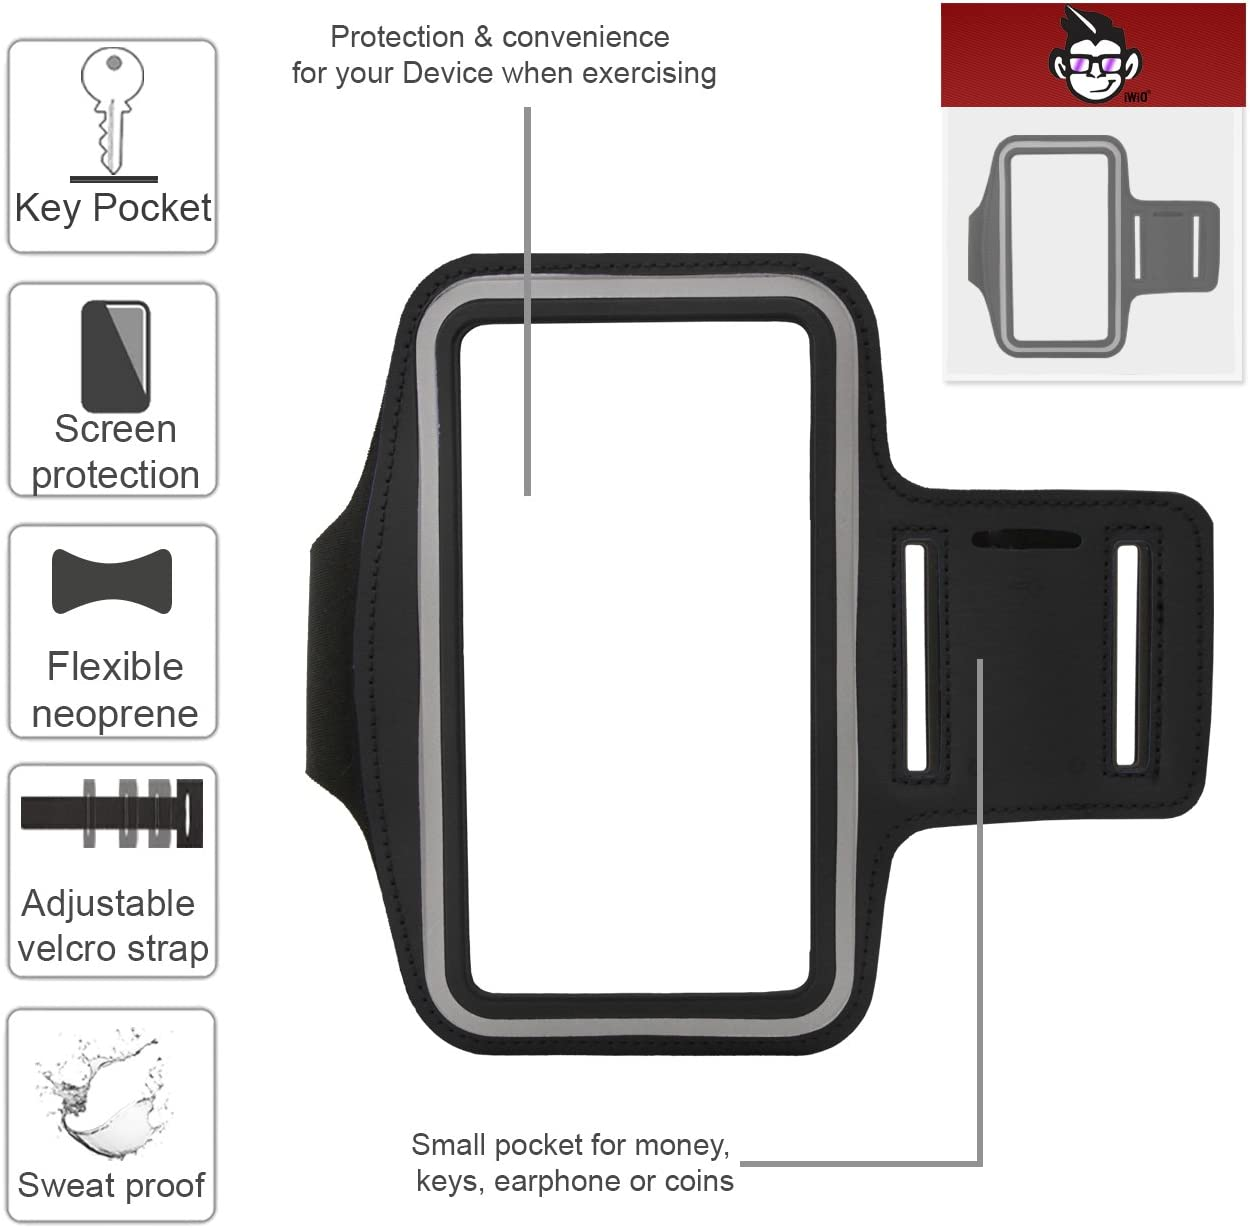 BLACK IWIO Premium Adjustable Strap Armband Phone Case Holder for Jogging//Running//Fitness//Gym Workouts//Outdoor Sports includes Money Pocket for Huawei P20 Lite 2018